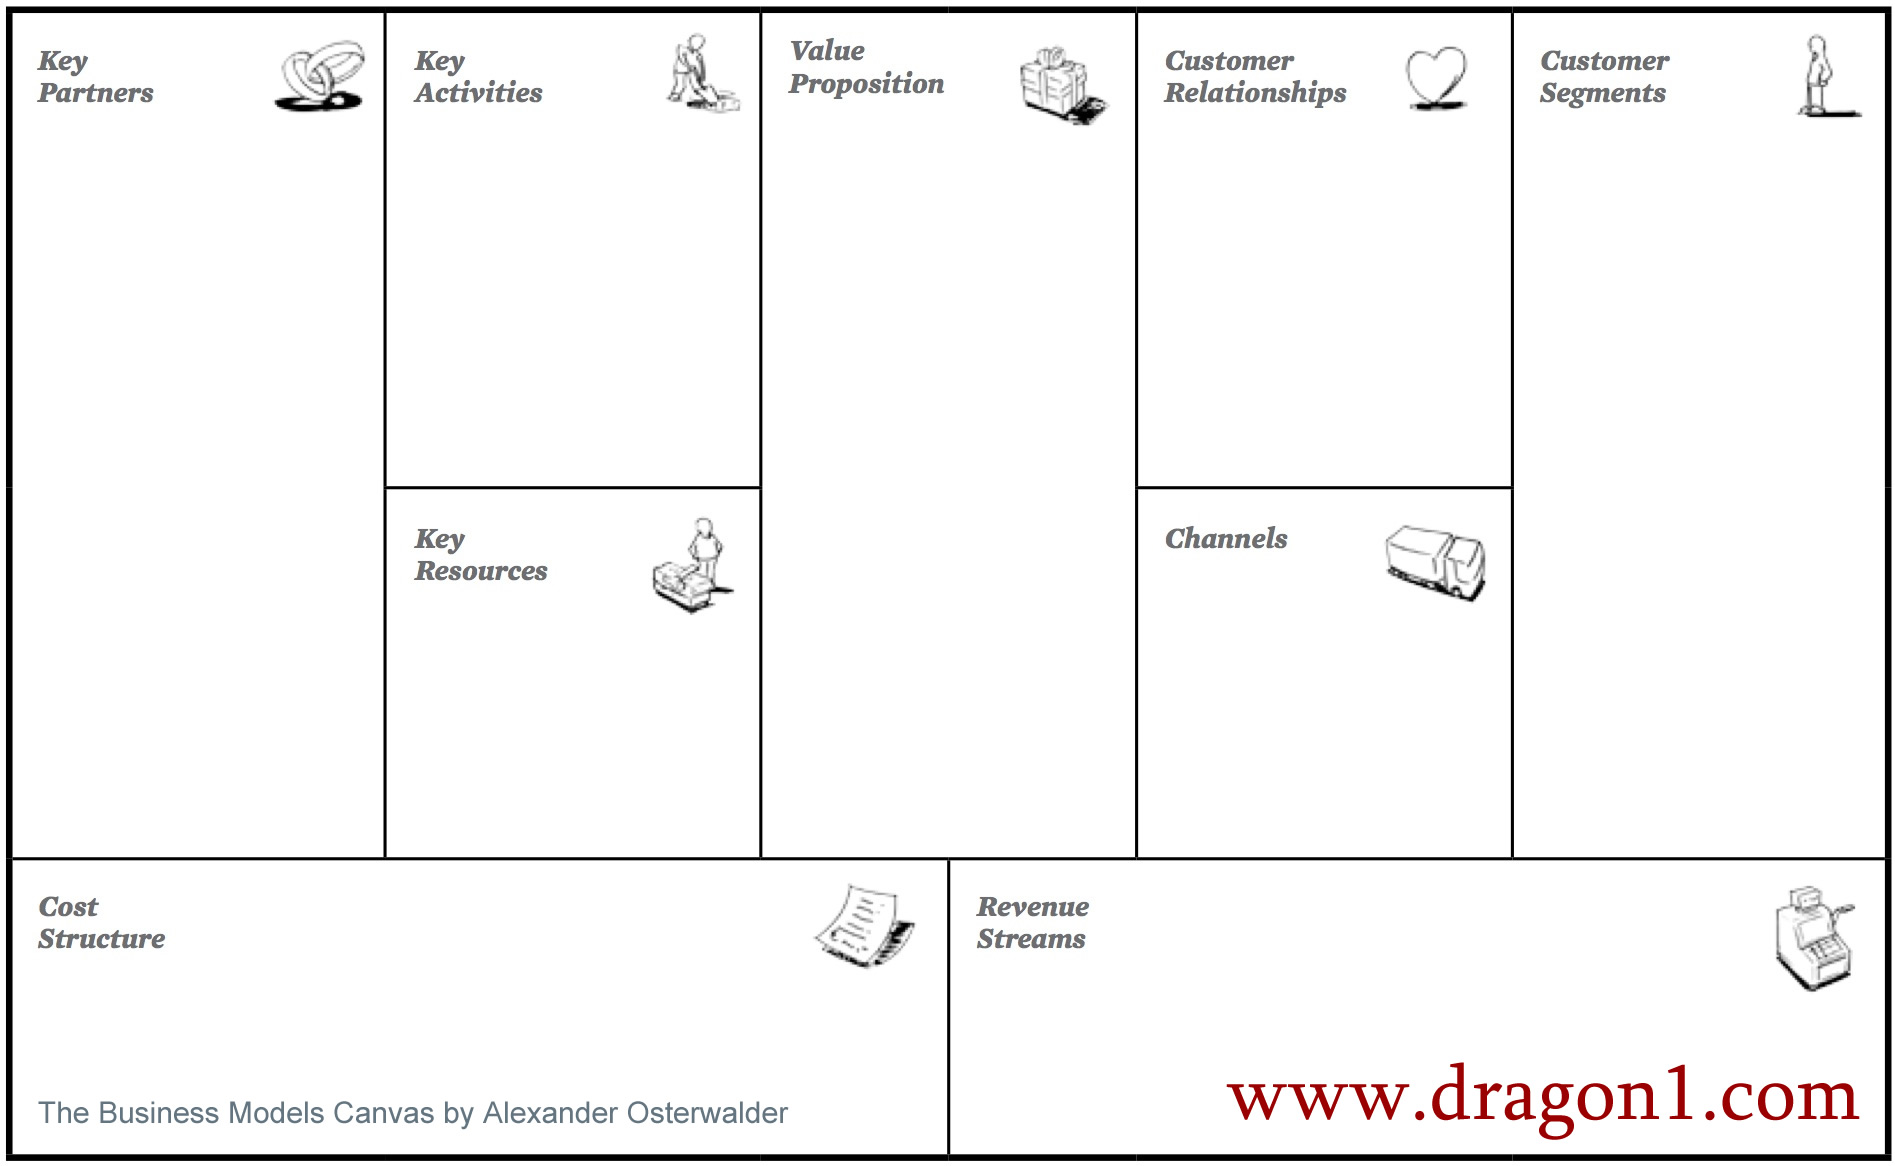 Business model canvas template dragon1 business model canvas template friedricerecipe Gallery